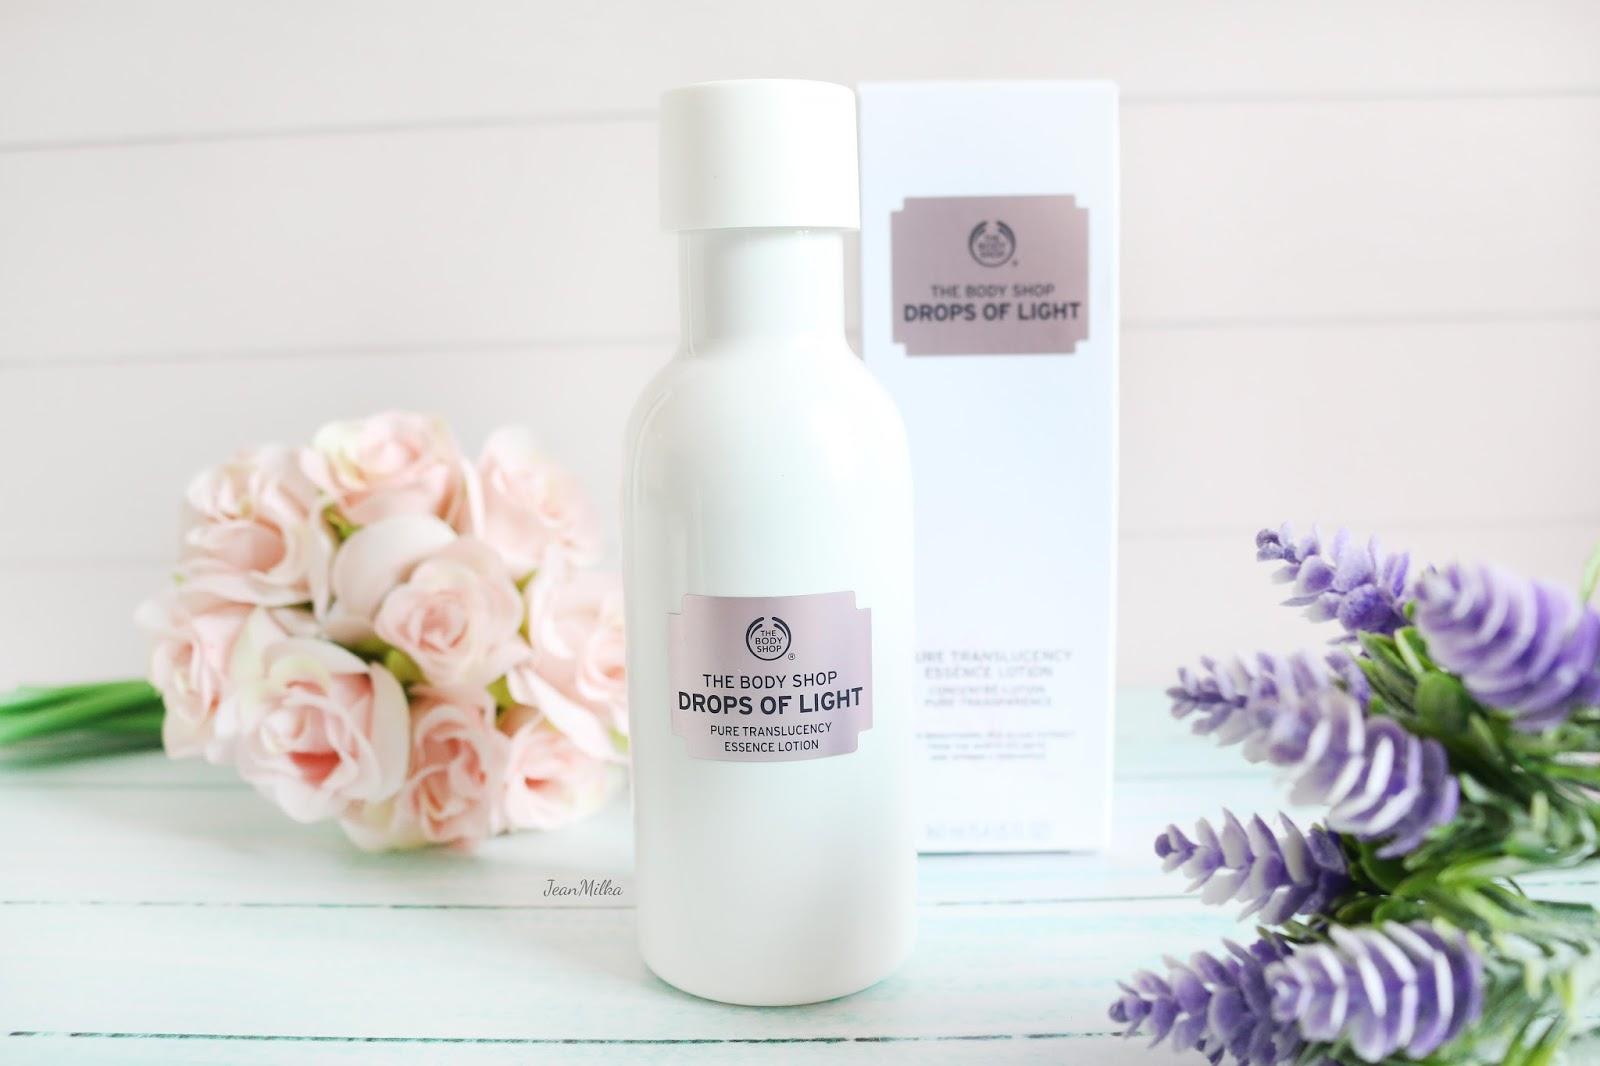 The Body Shop Drops of Light and Skin Defence Multi